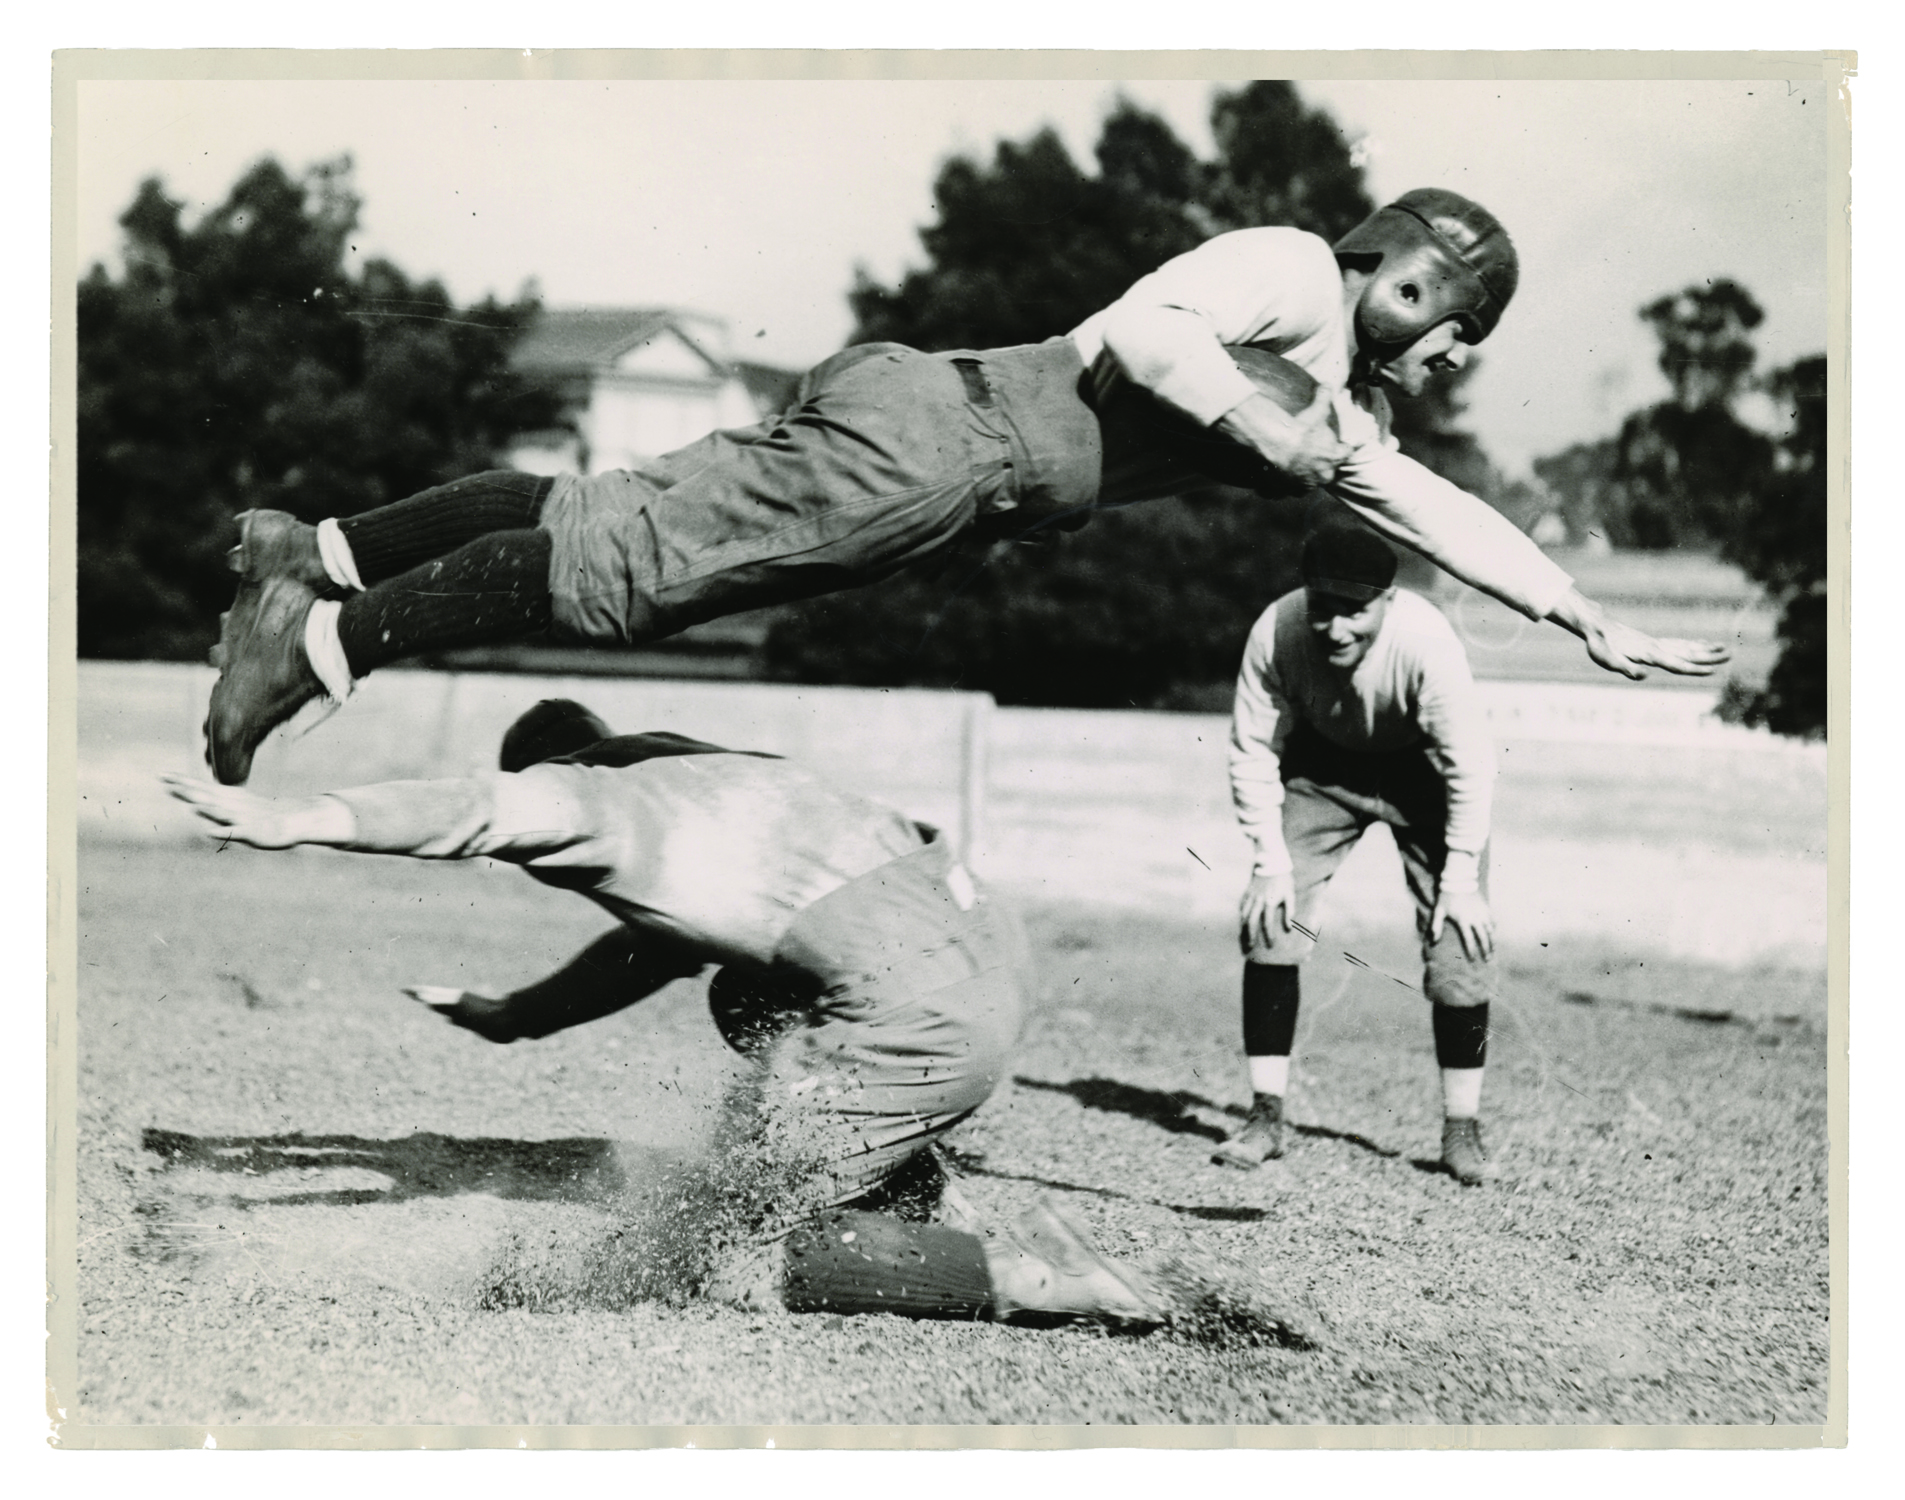 A Saint Mary's Football player goes airborne as Madigan looks on in this 1930s publicity photo.